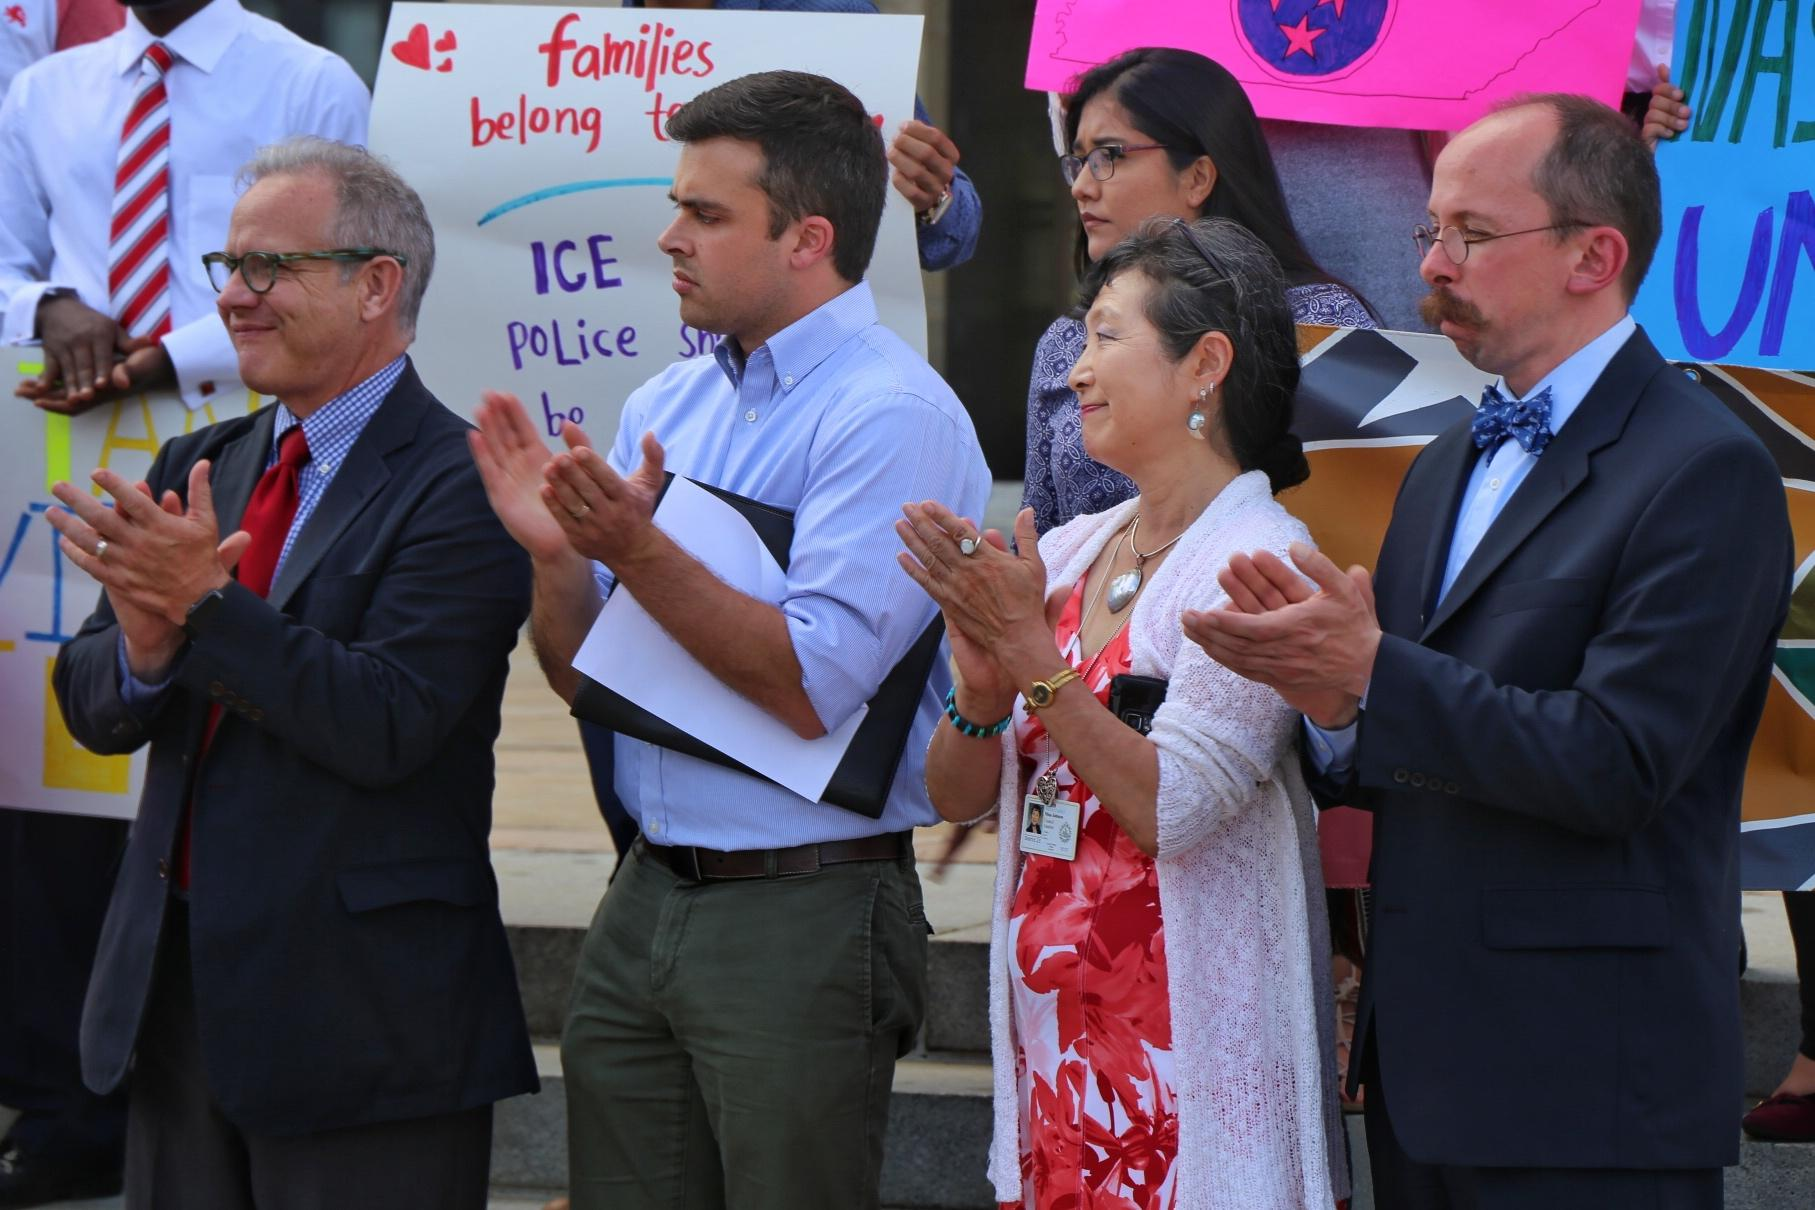 Workers detained by ICE on military base denied immigration hearing